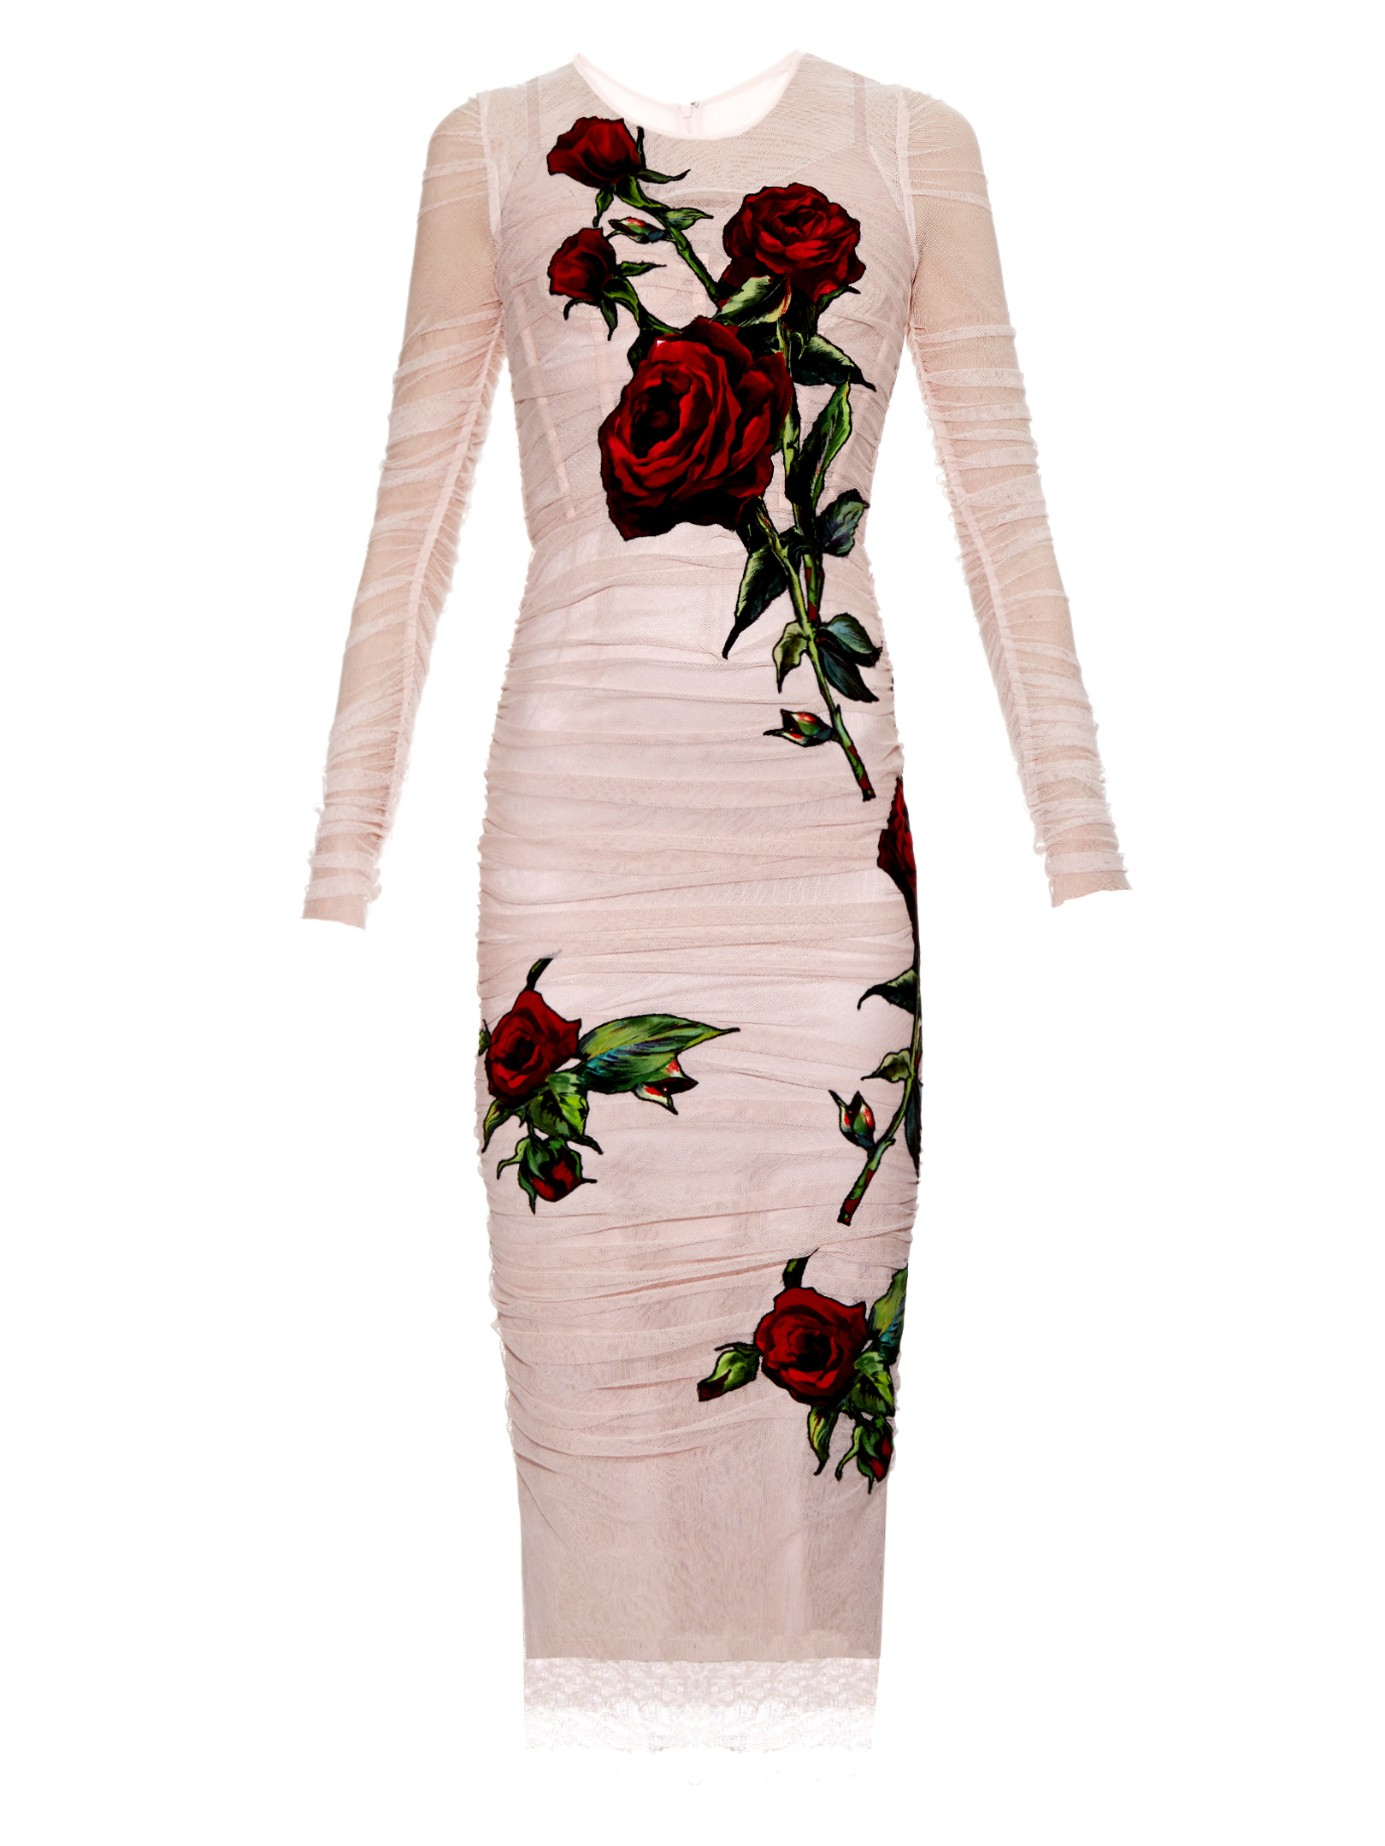 Lyst - Dolce u0026 Gabbana Rose-embroidered Tulle Dress in Pink